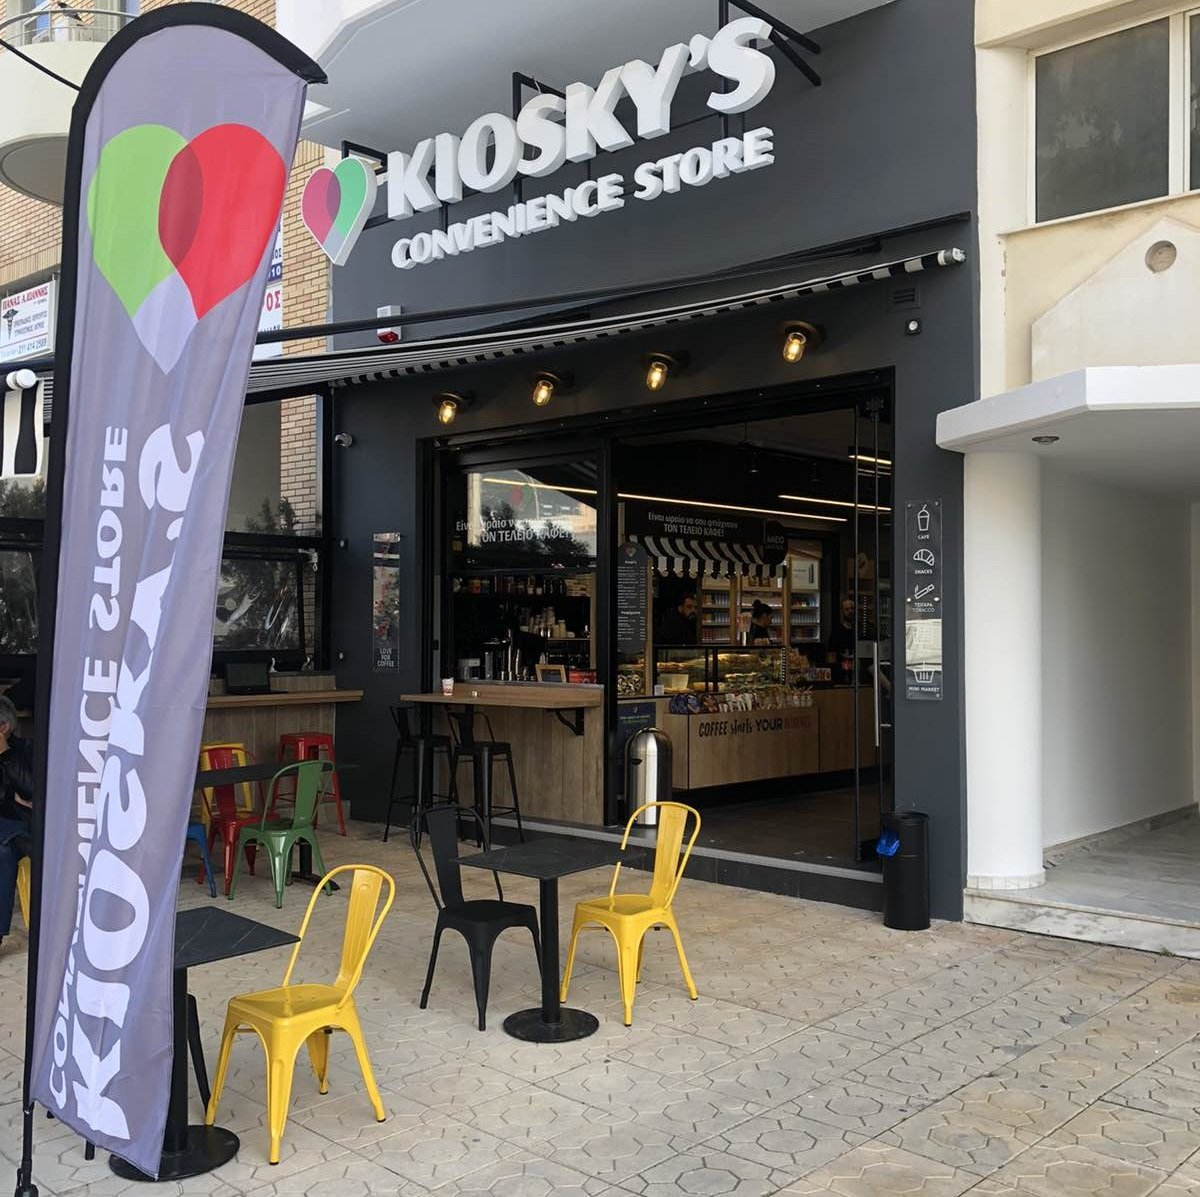 franchise-kioskys-convenience-store-axarnes